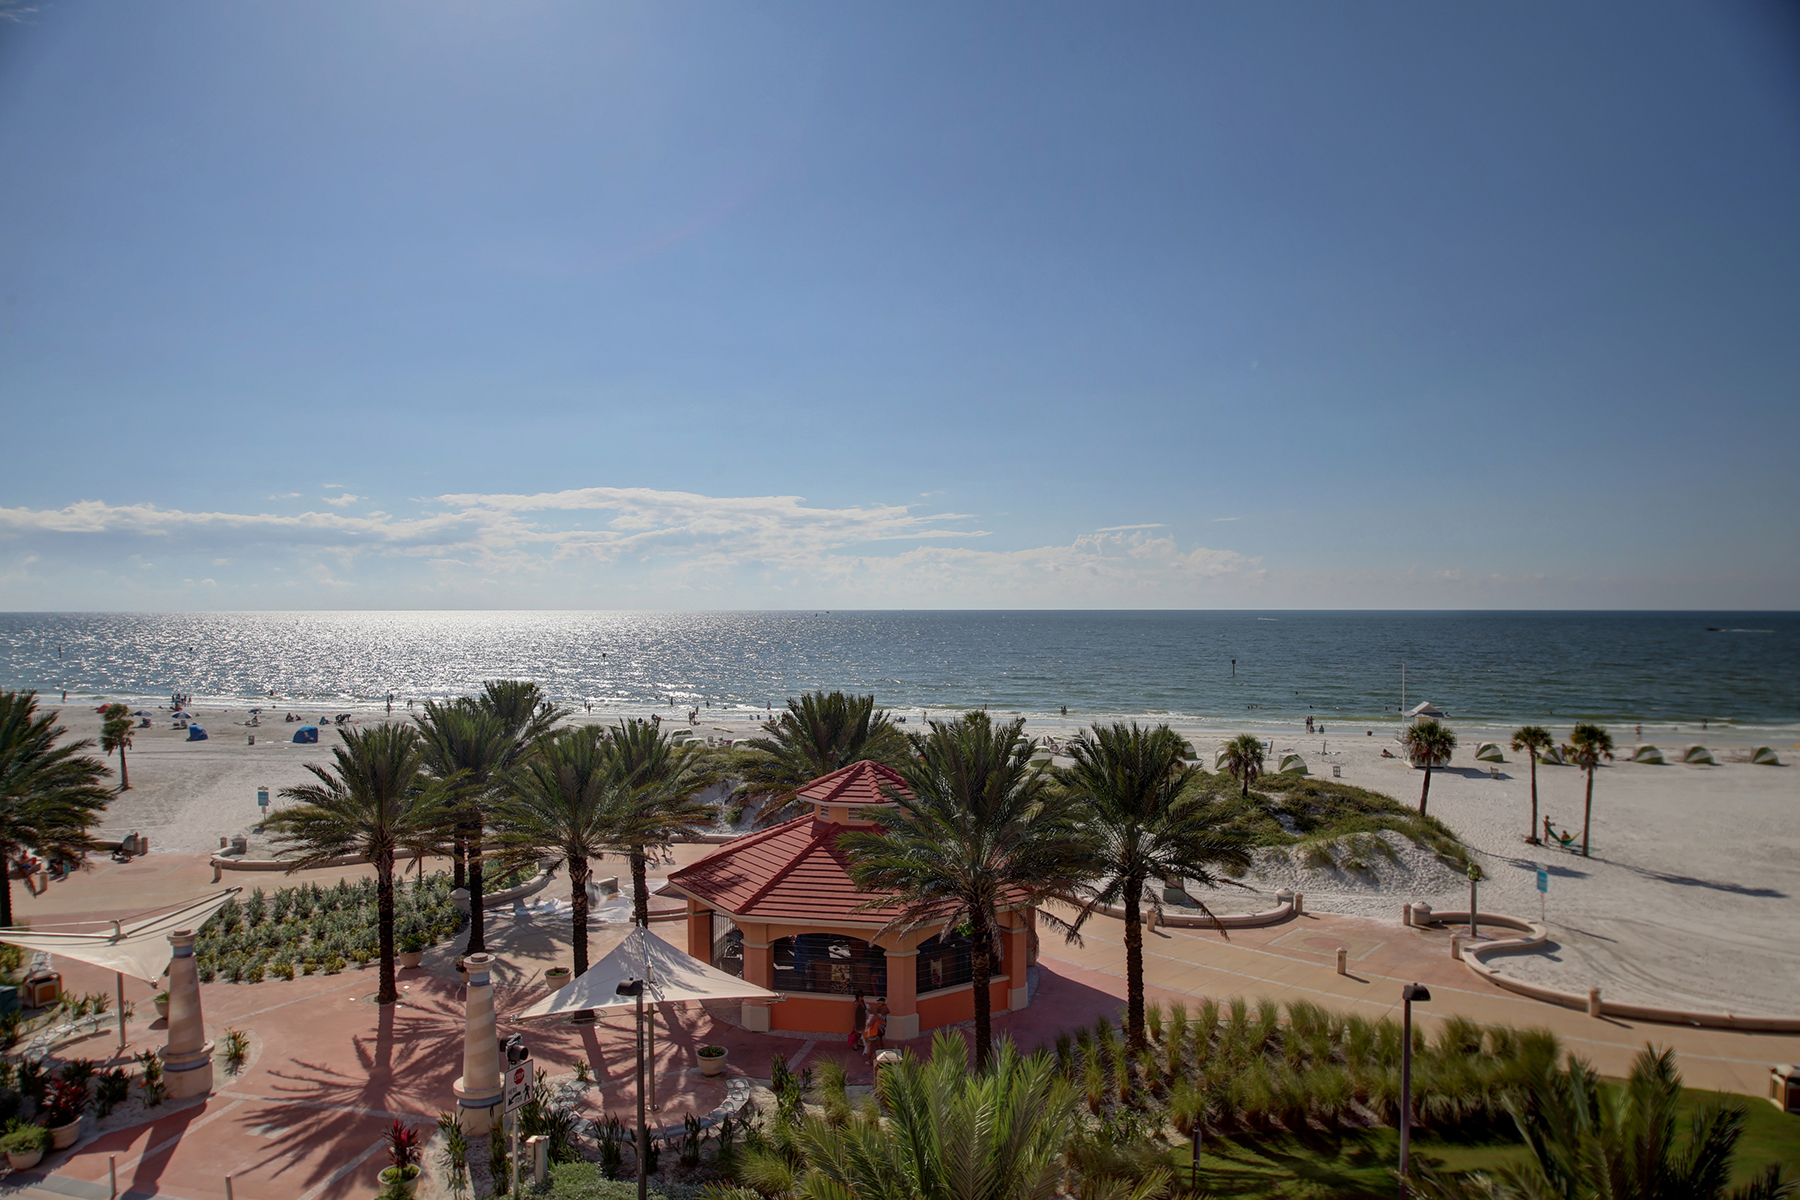 Condominium for Sale at CLEARWATER BEACH 301 S Gulfview Blvd 401 Clearwater Beach, Florida 33767 United States